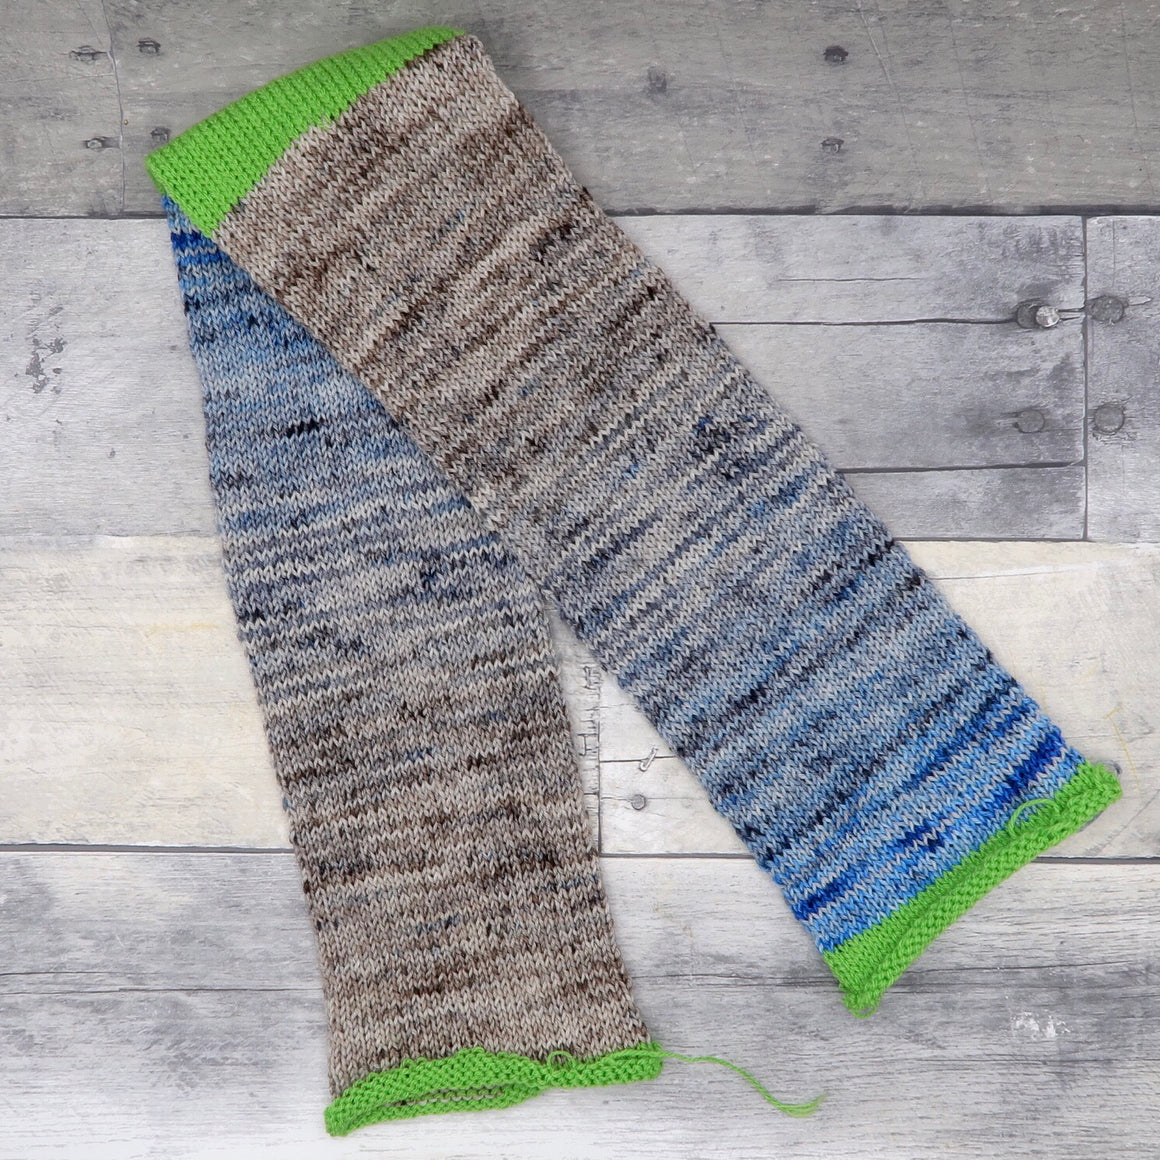 Sock Tube (gradient, ocean blue through grey and sand) -  60 sts, 8 sts/in, 10 rows/in